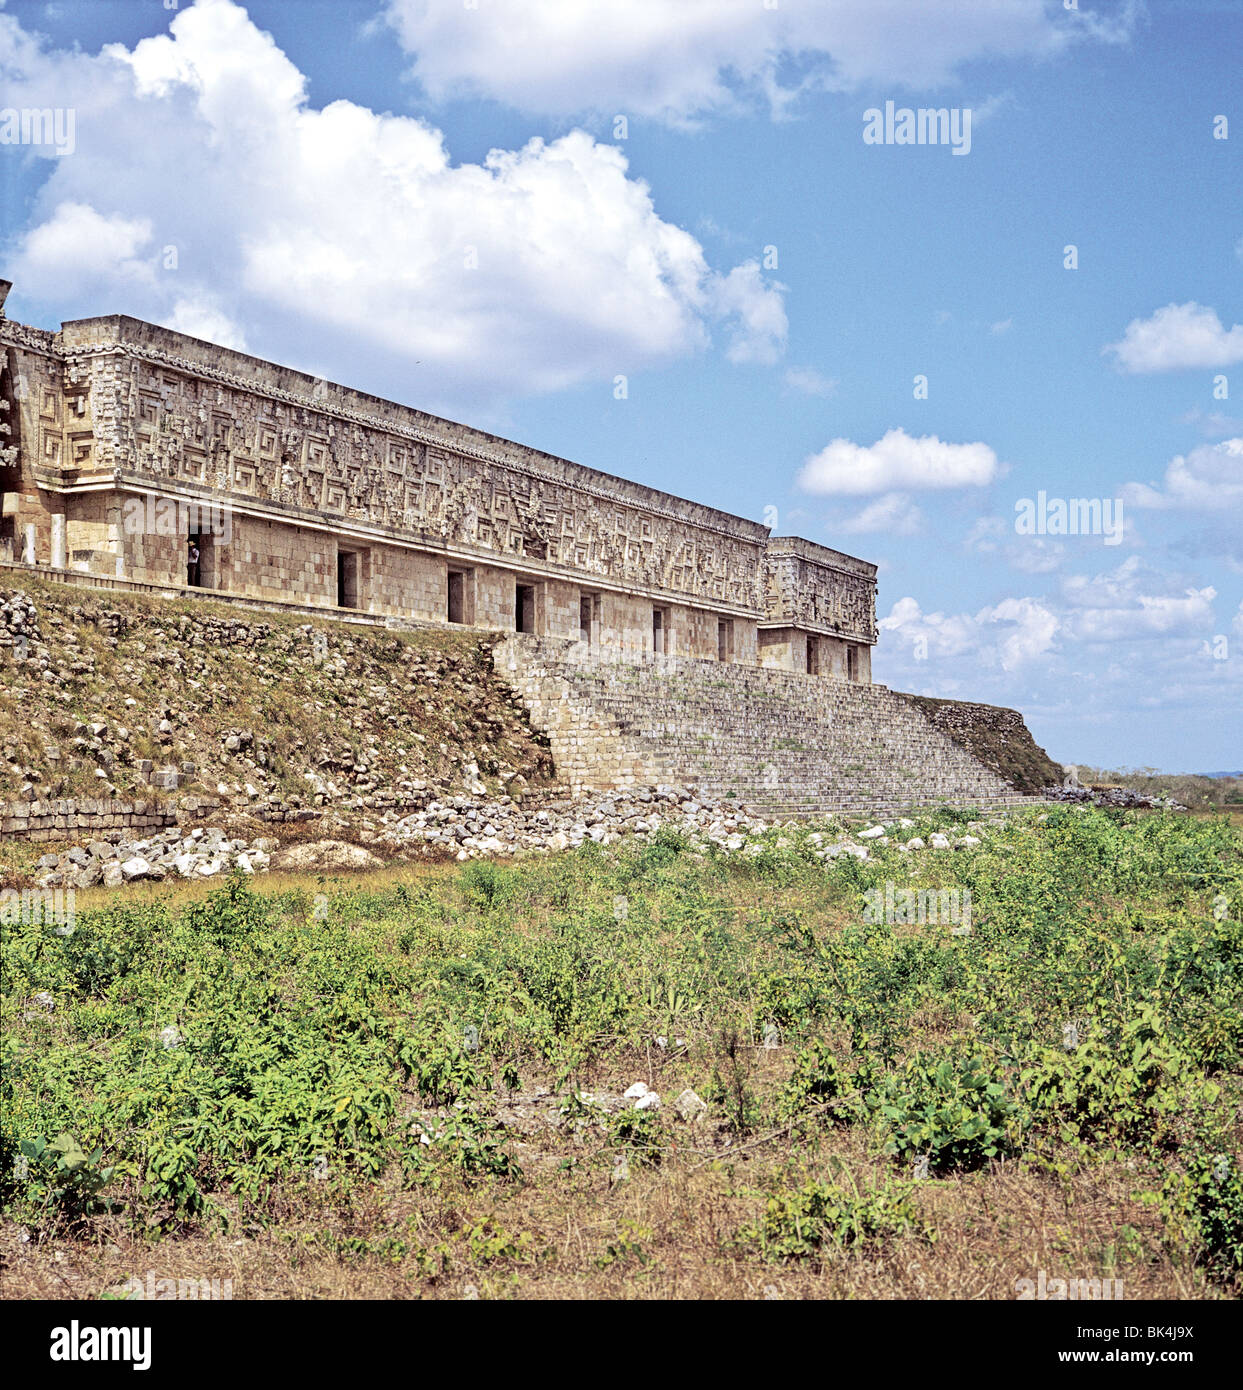 The Palace of the Governor, 900-1000 AD, in Uxmal, Mexico - Stock Image